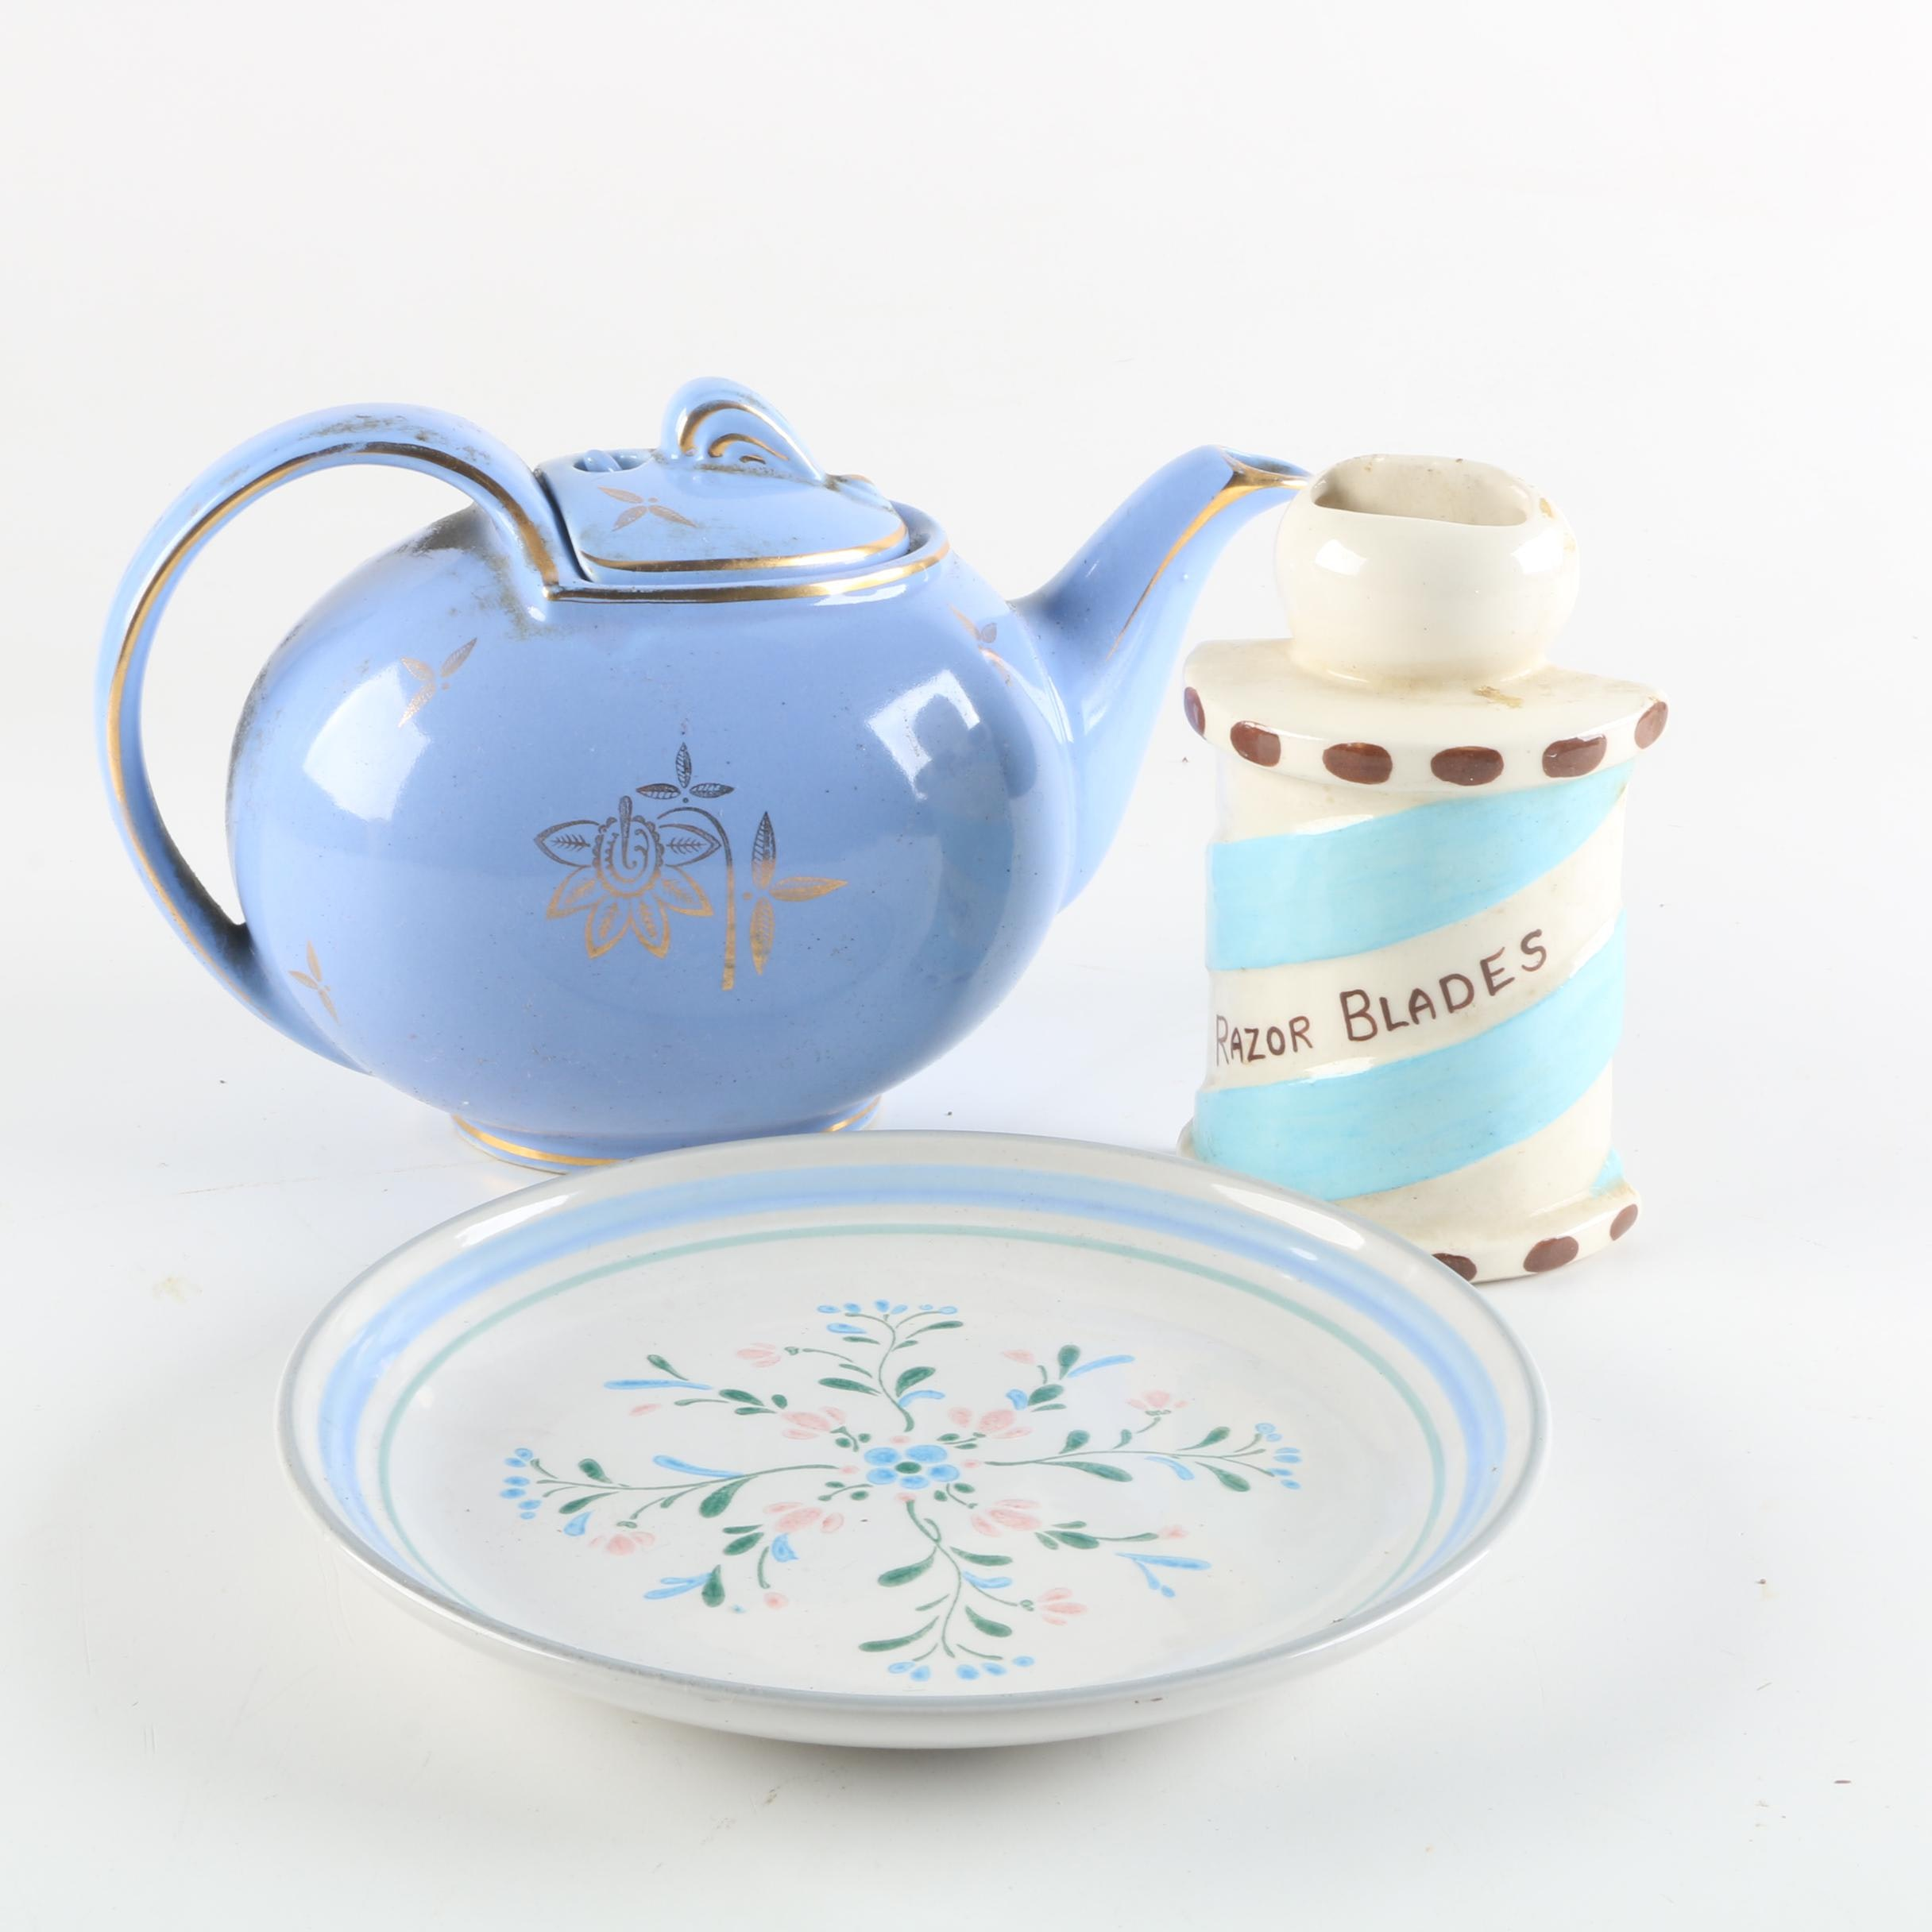 Vintage Hall Ceramic Teapot with Decorative Plate and Wall Decor